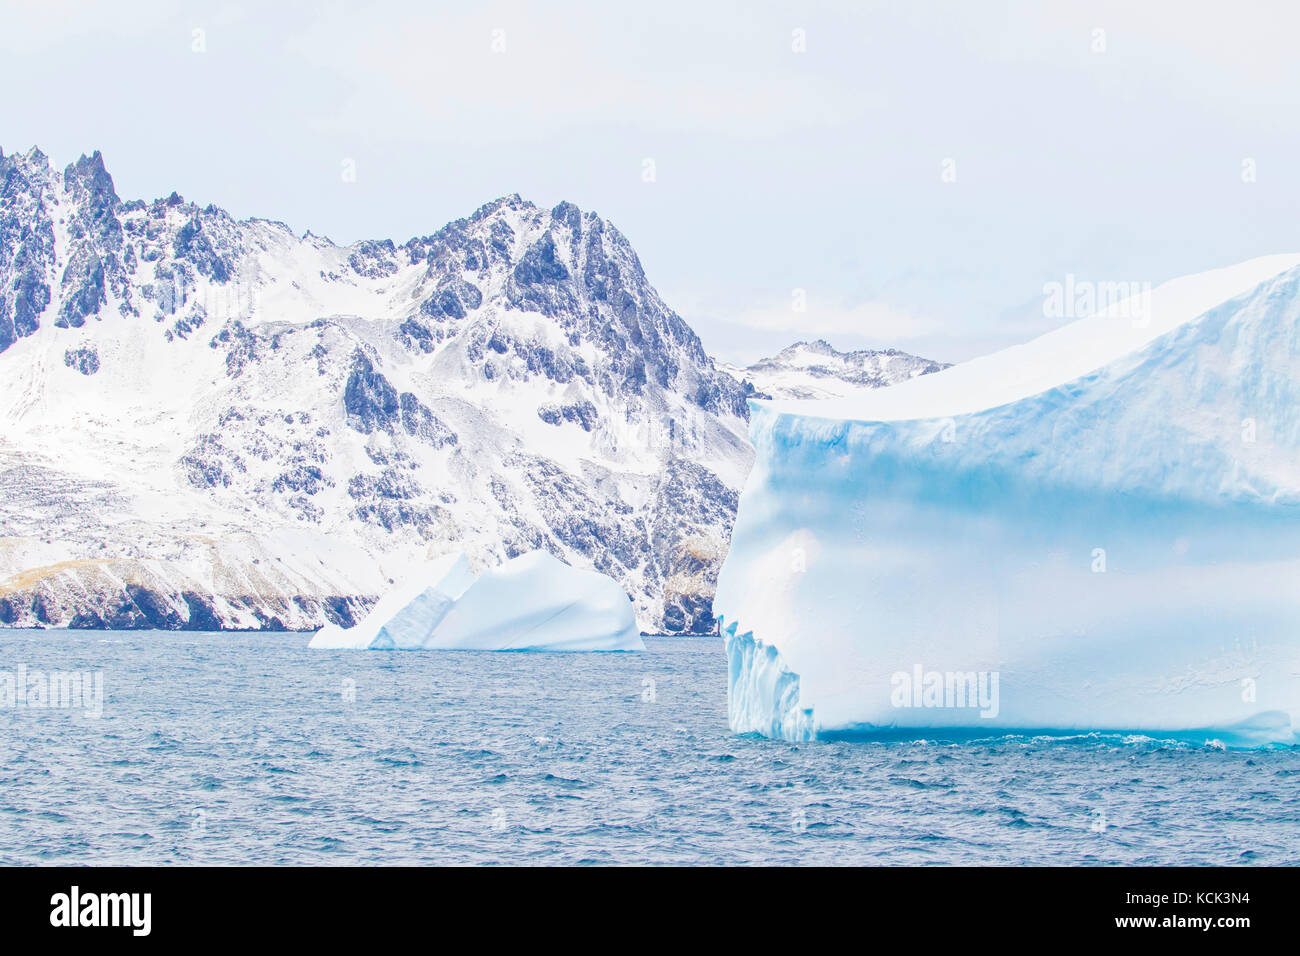 Icebergs in the South Georgia and the South Sandwich Islands - Stock Image